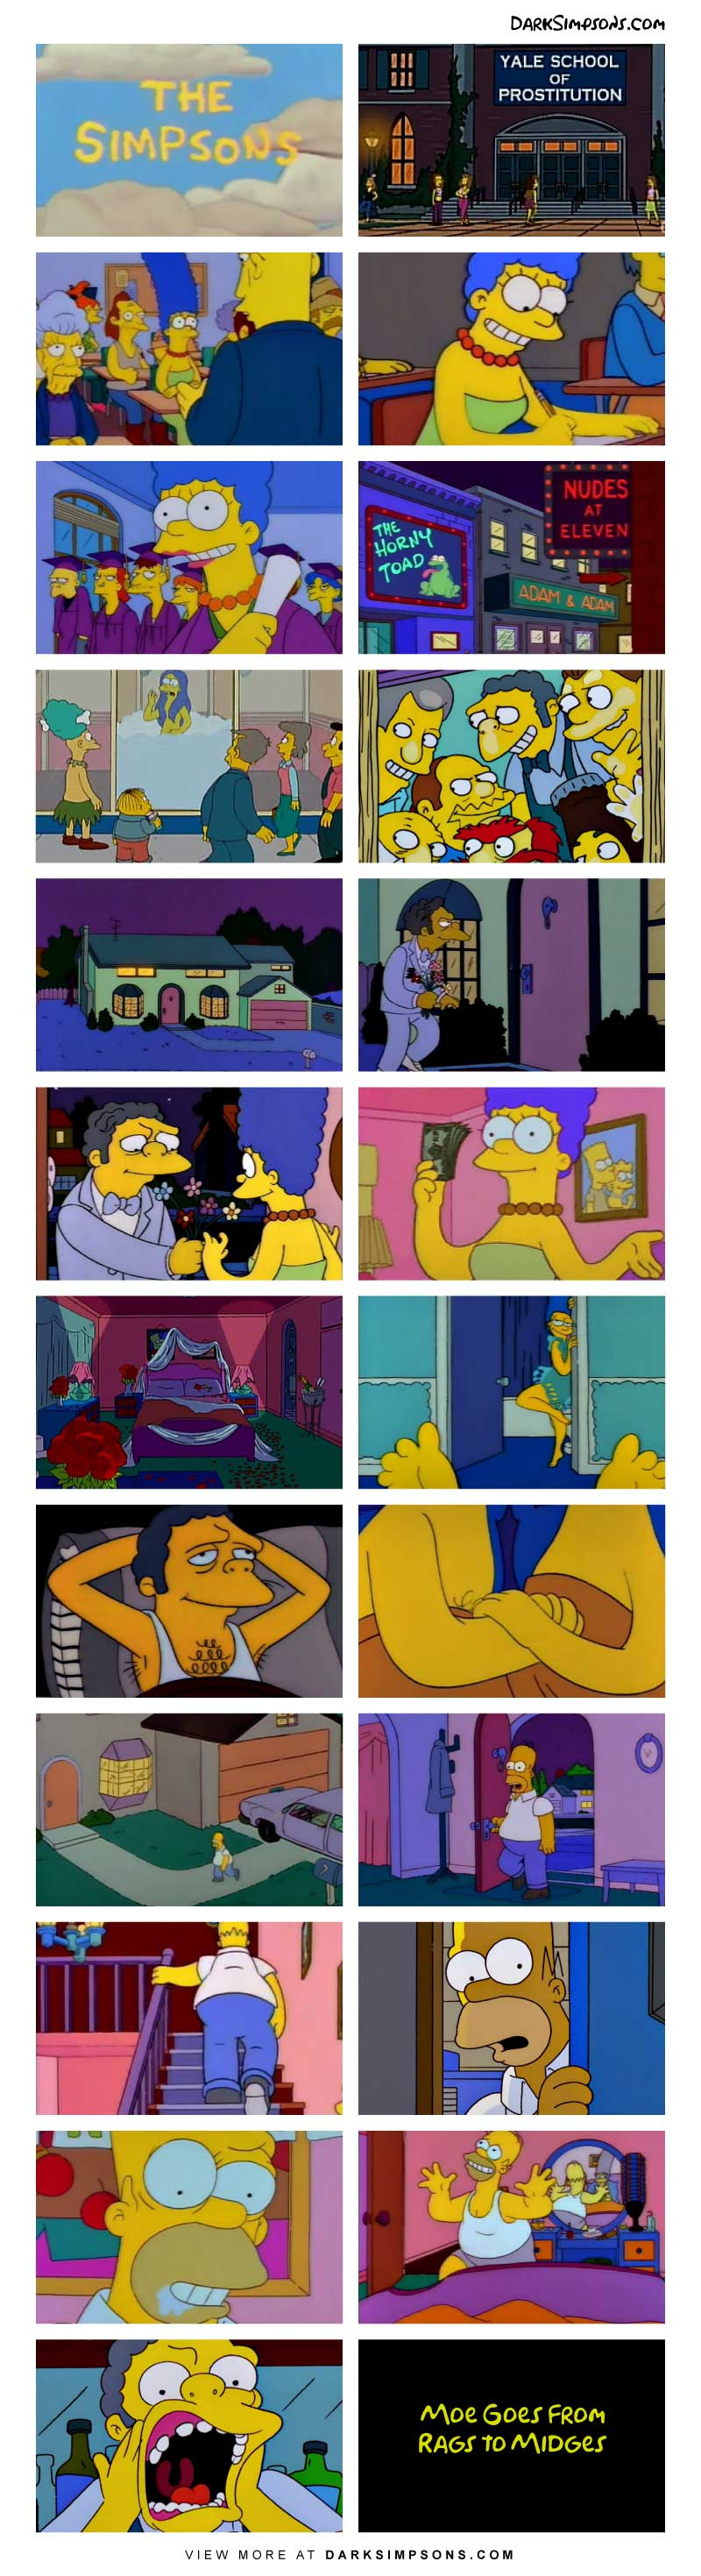 Marge has been bored lately so she decided to take up a new career path. Having no skills, she found the perfect job: prostitution! She goes to school to learn all of the skills and before you know it, she's walking the streets.